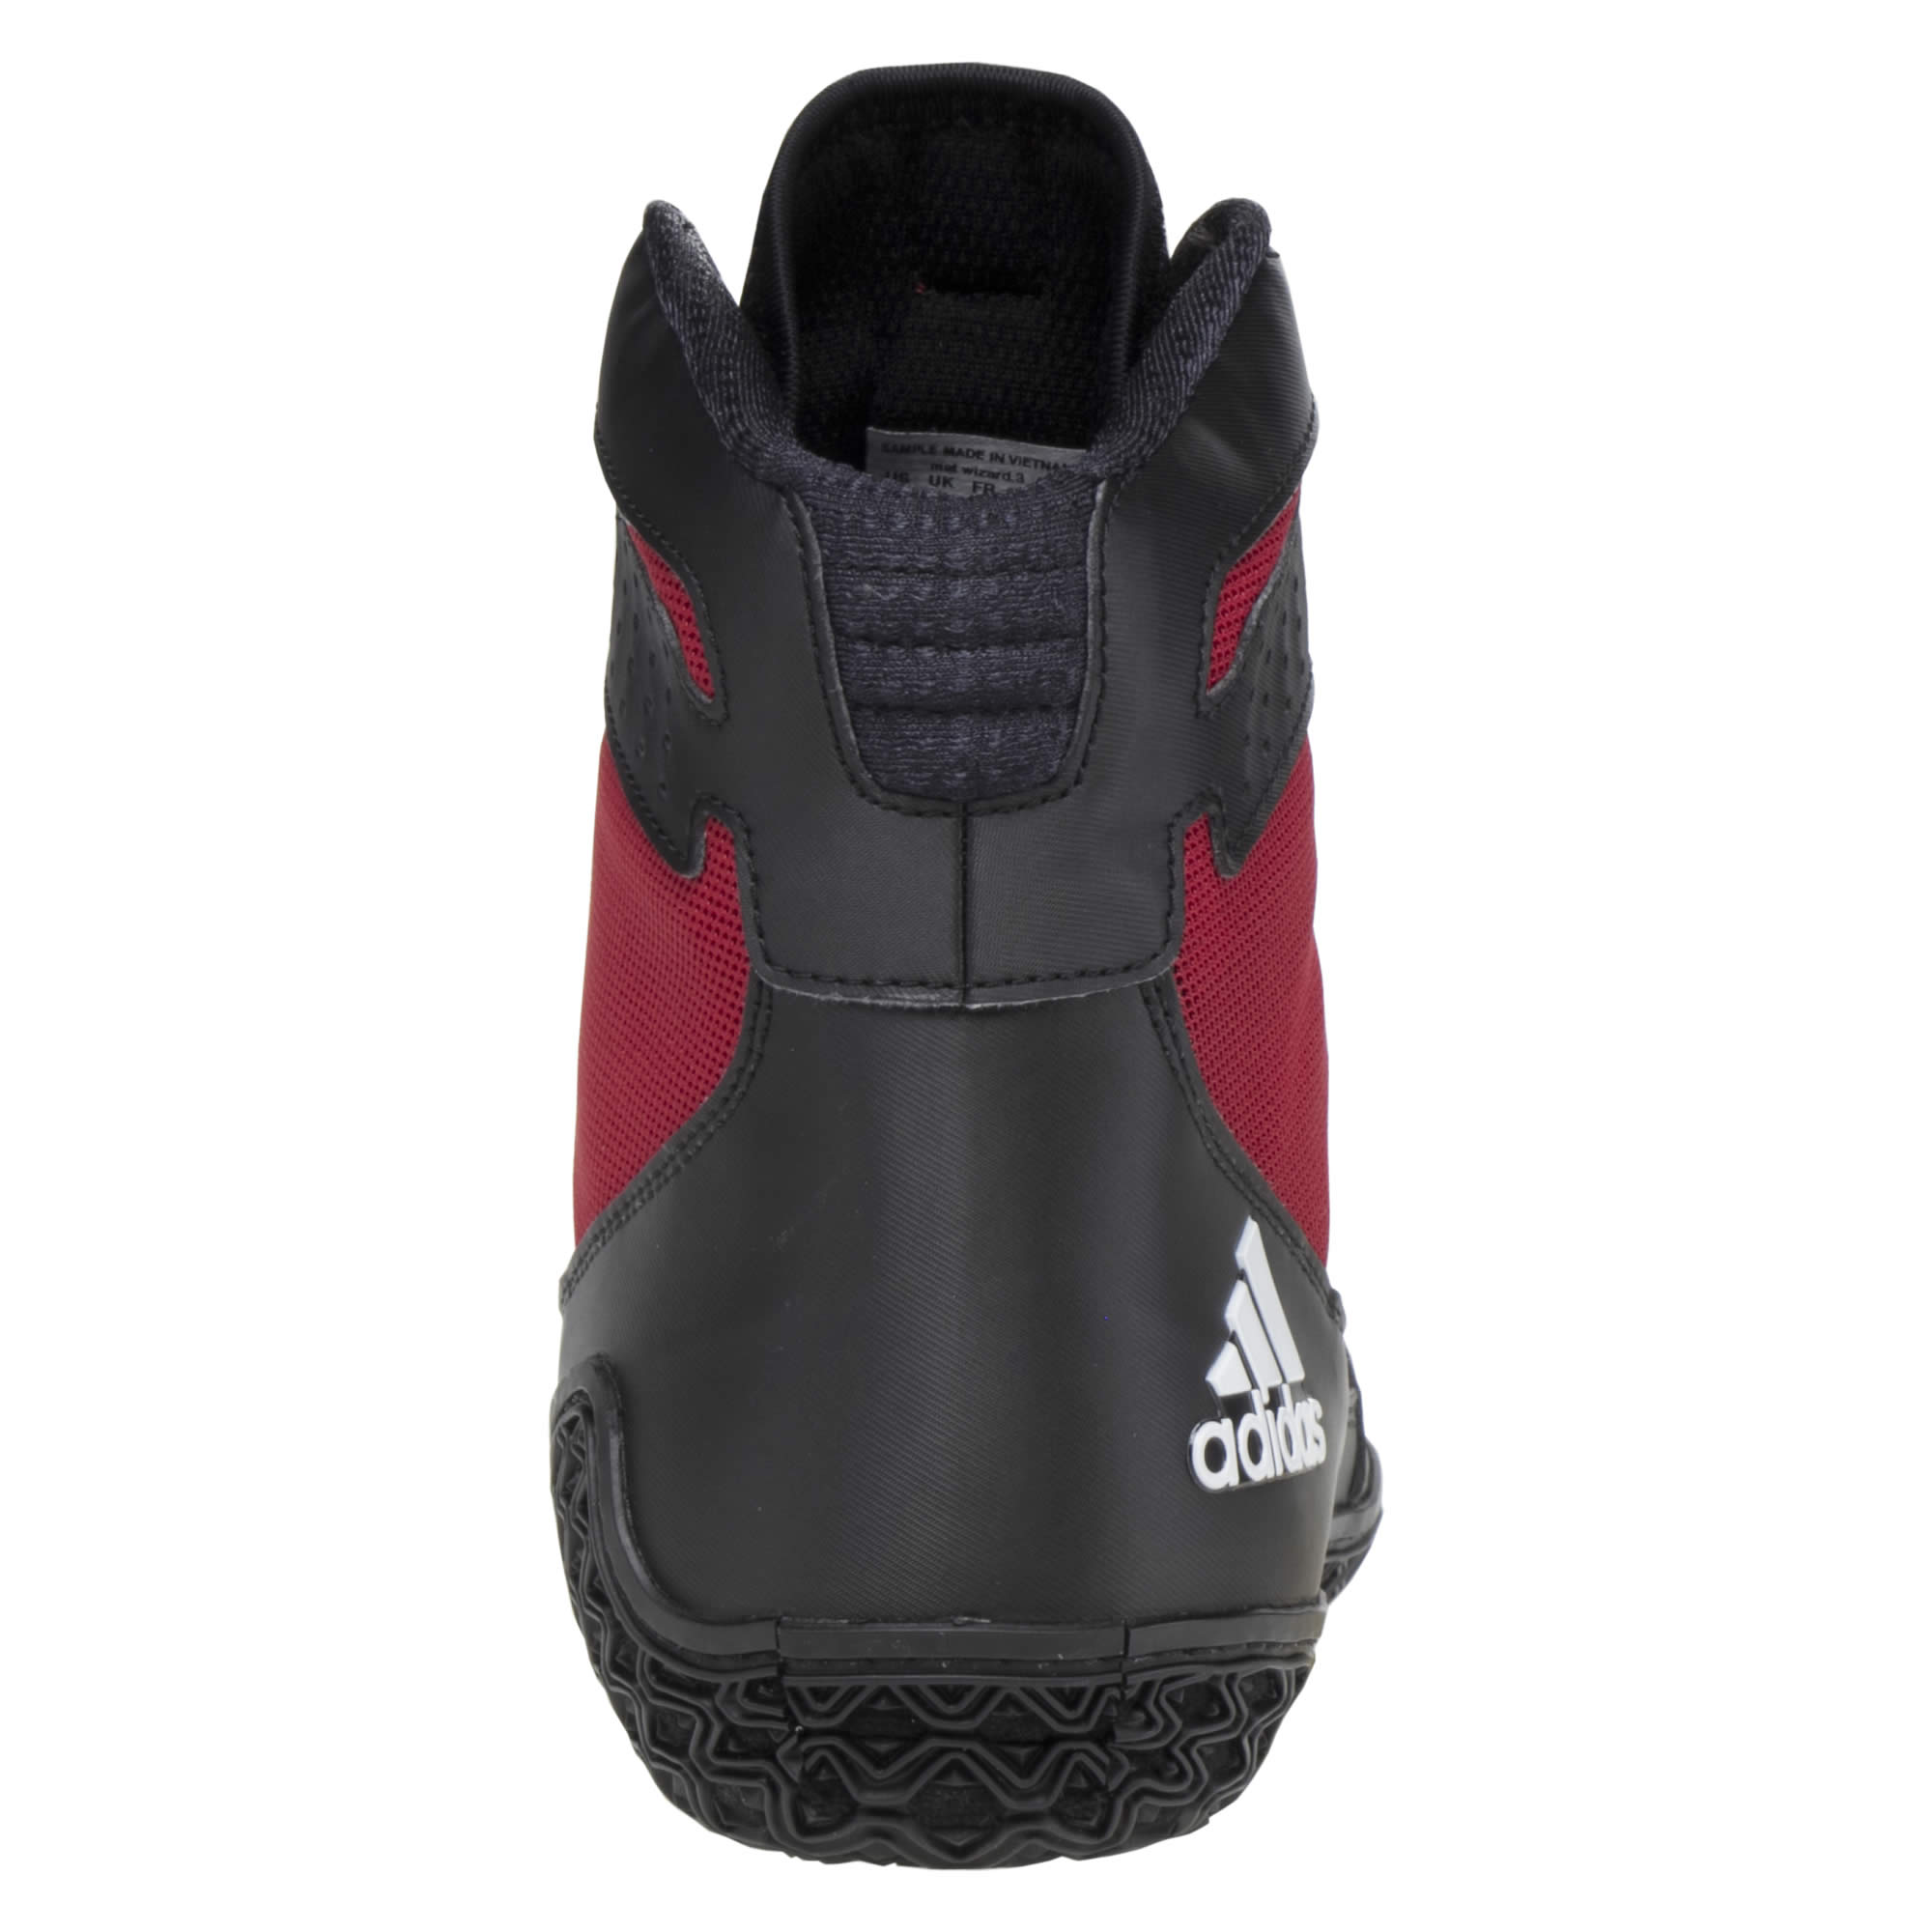 adidas shoes maroon